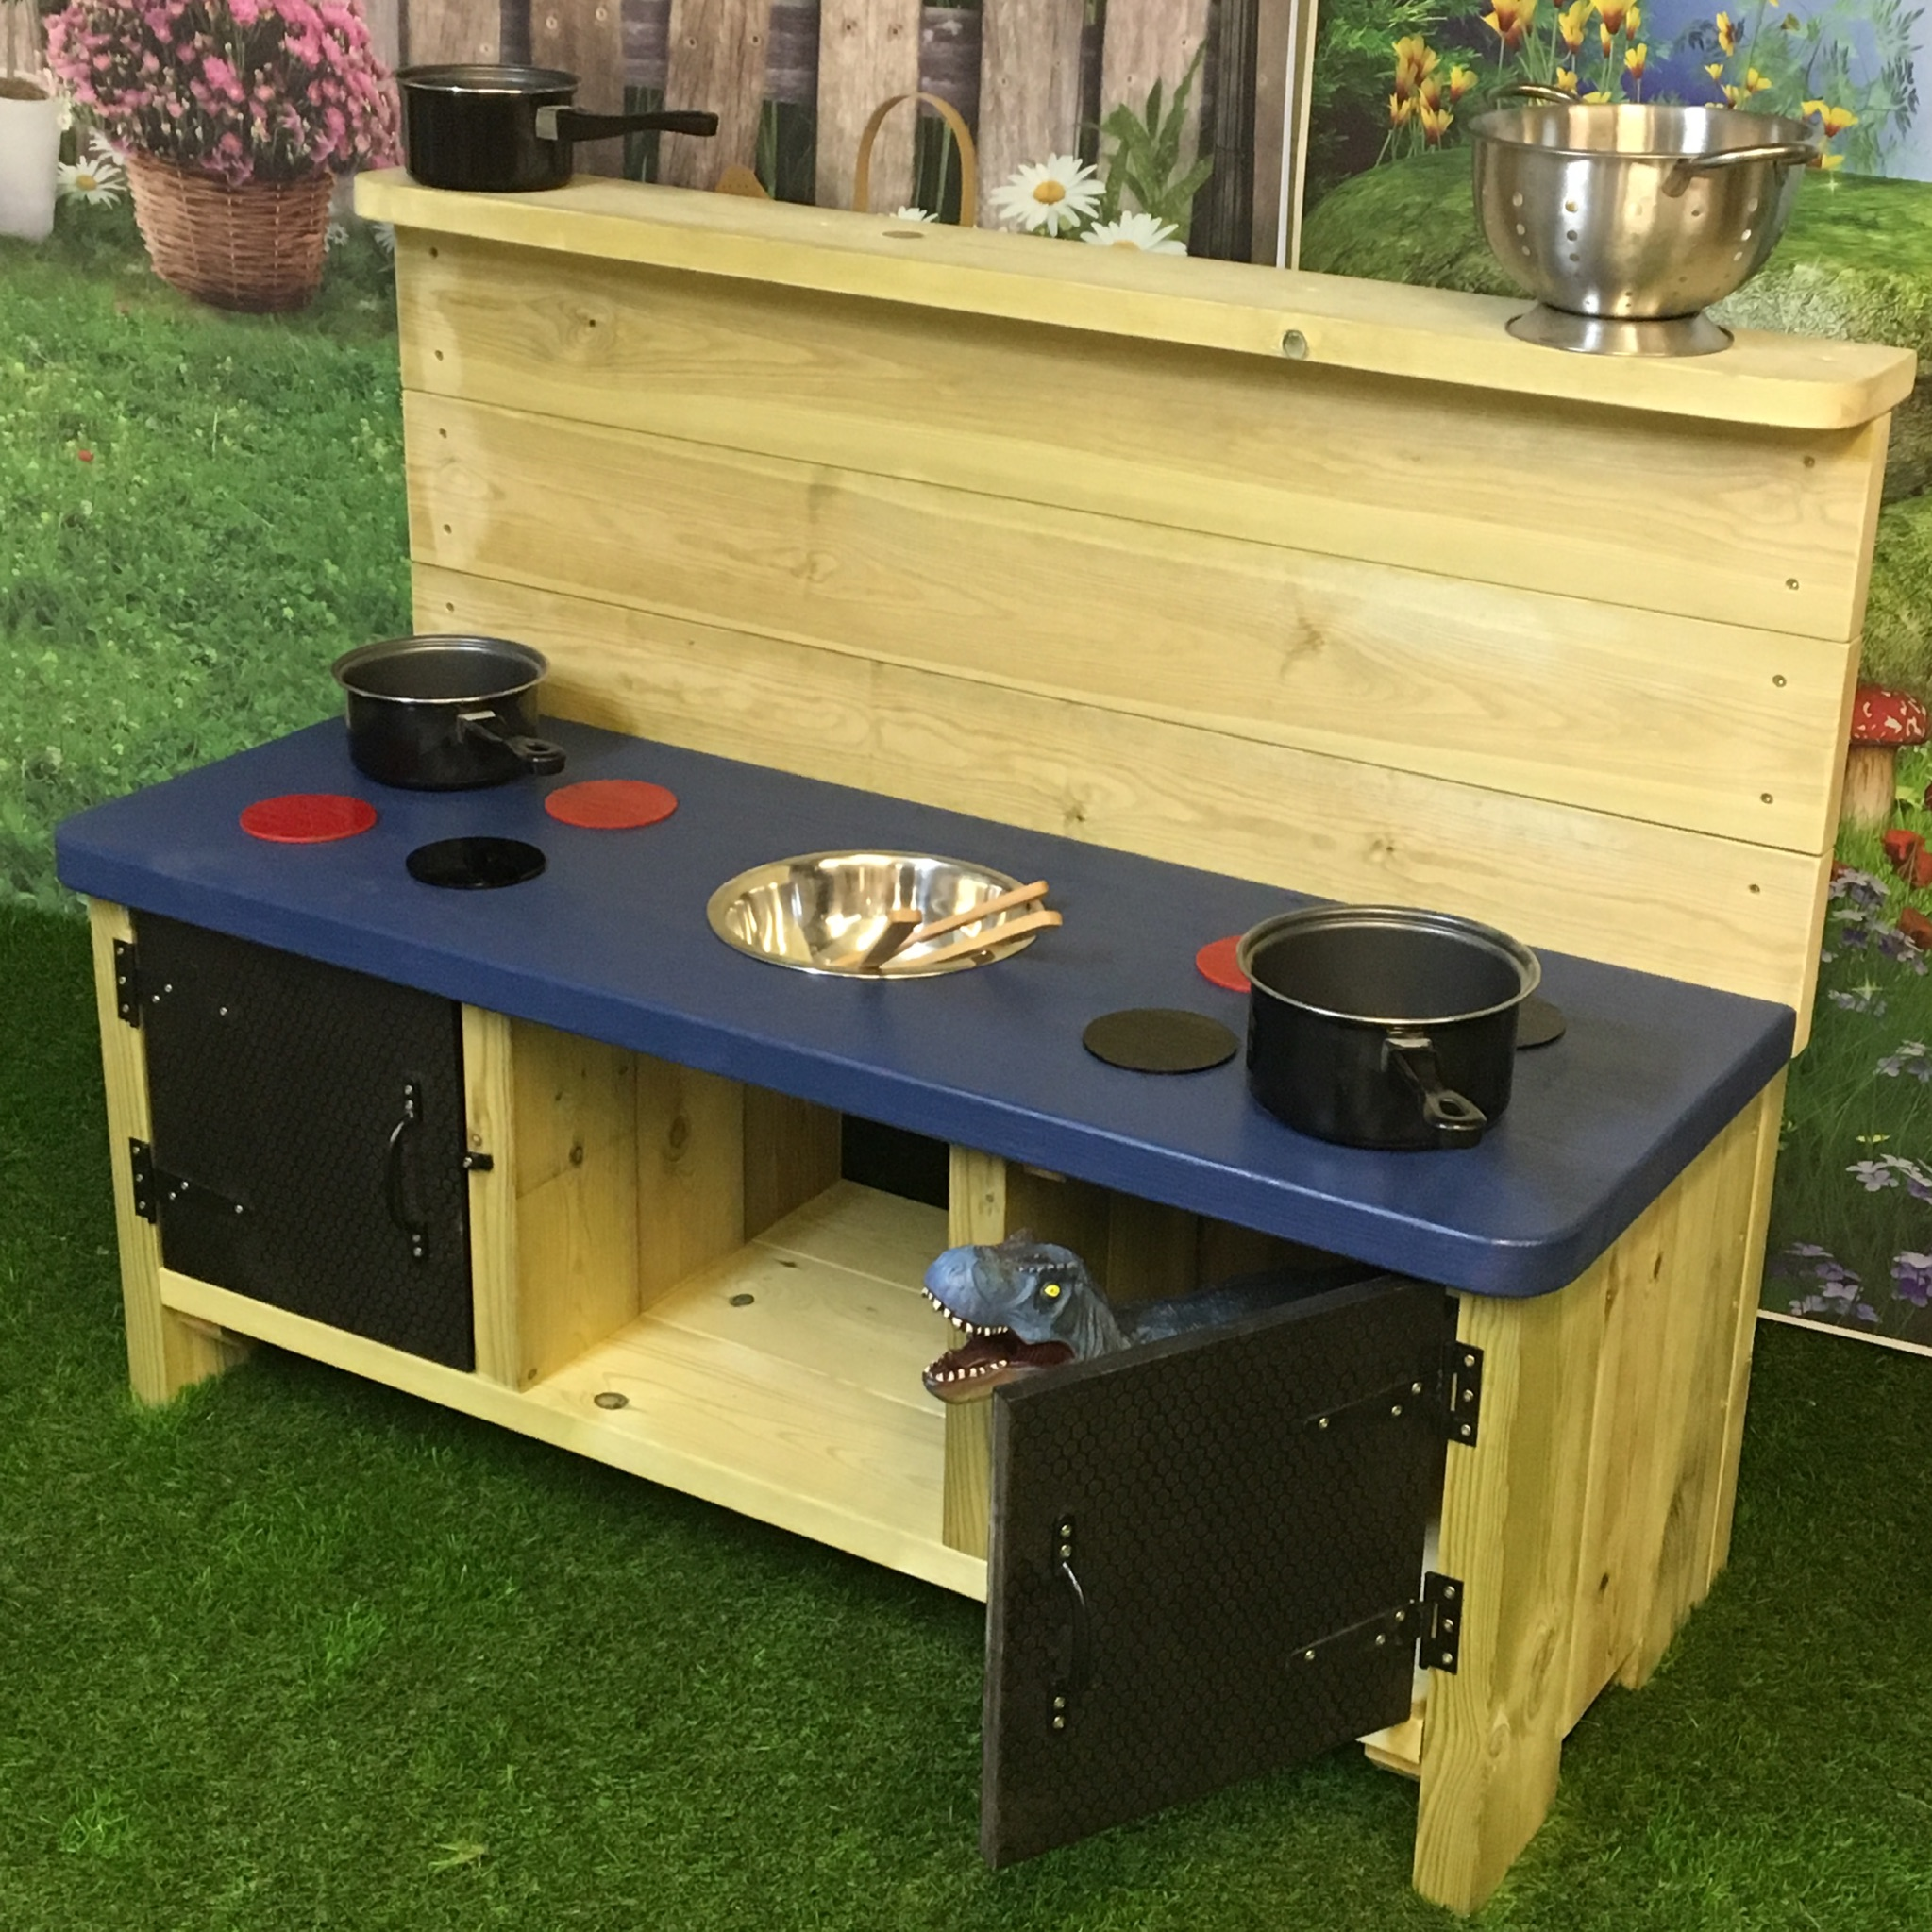 side view of the Buckingham Deluxe Mud Kitchen